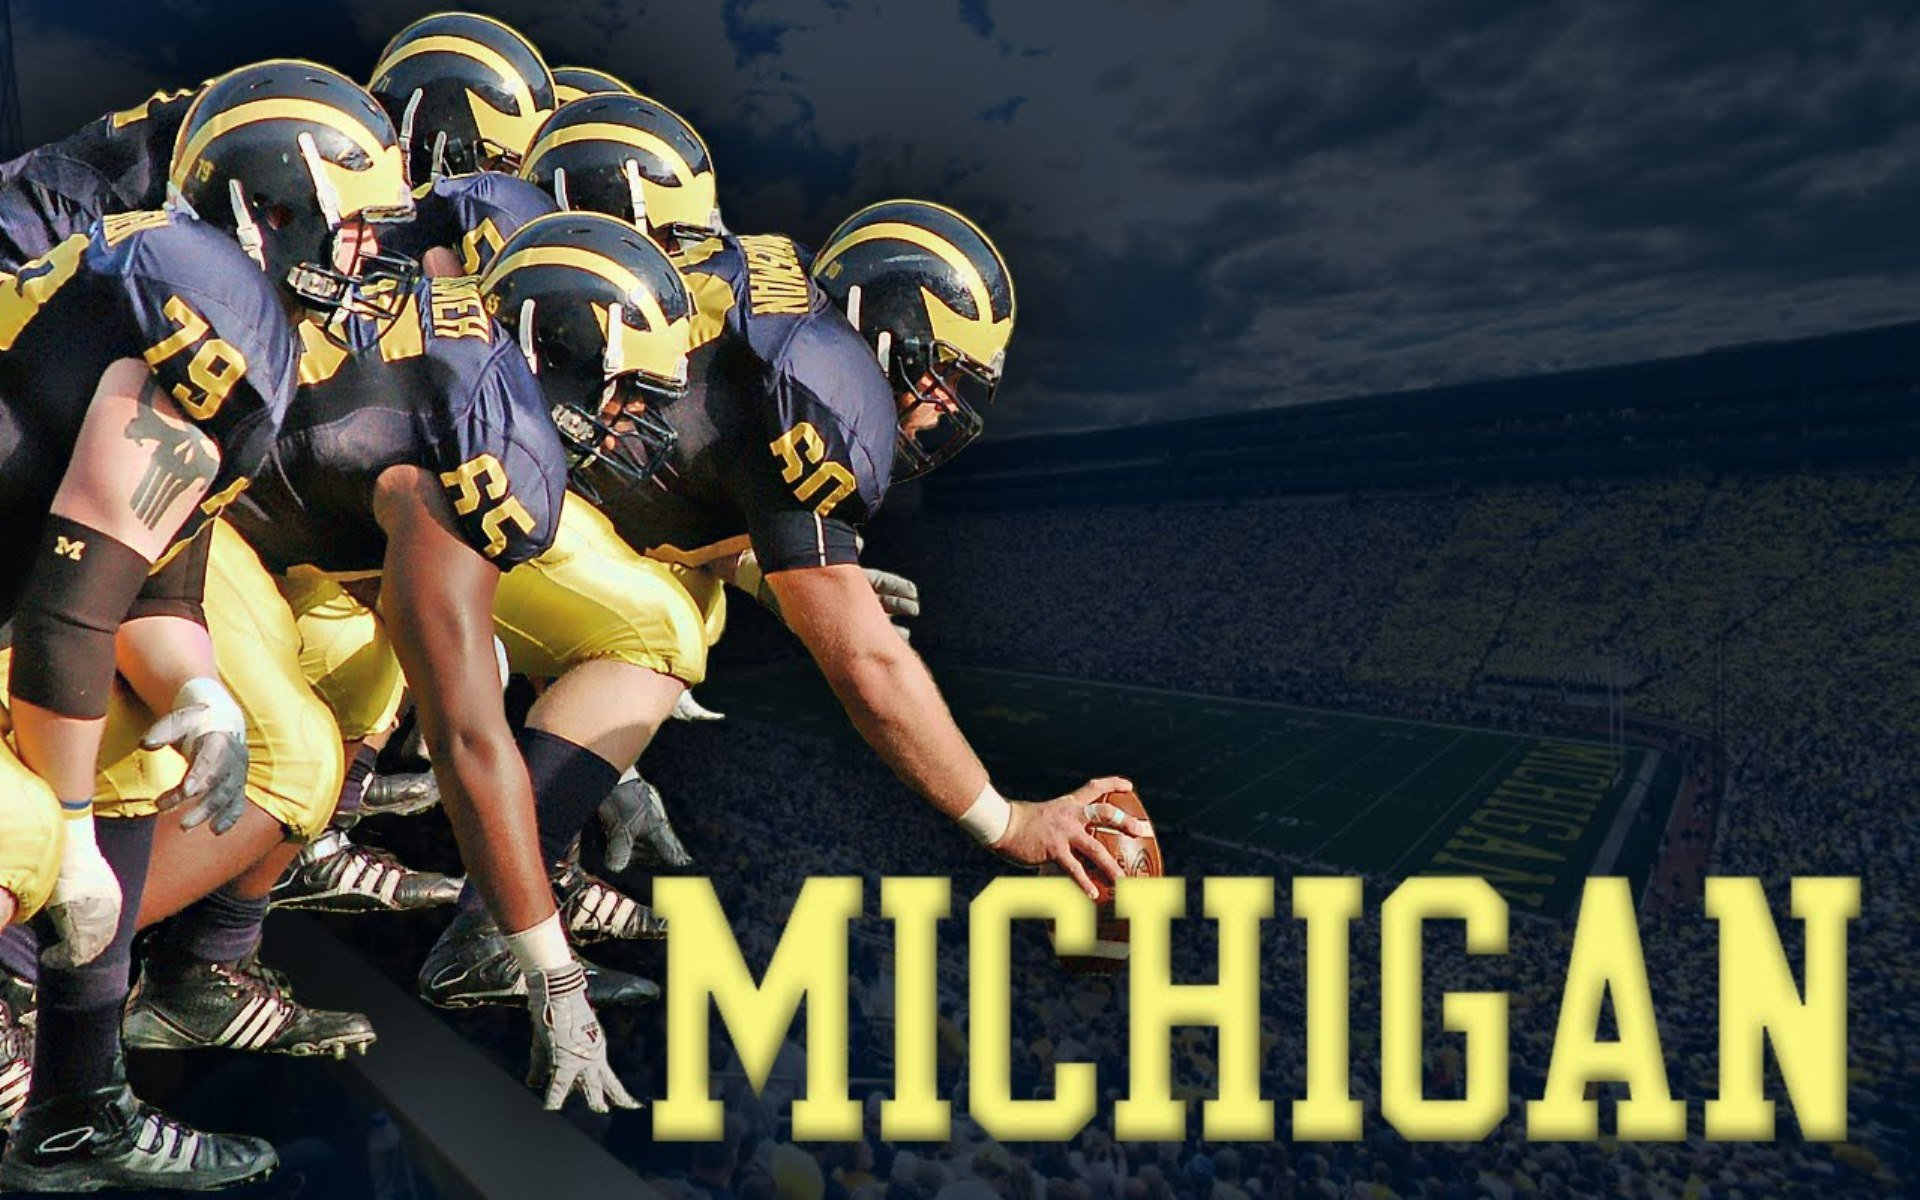 Michigan Wolverines Football Wallpaper